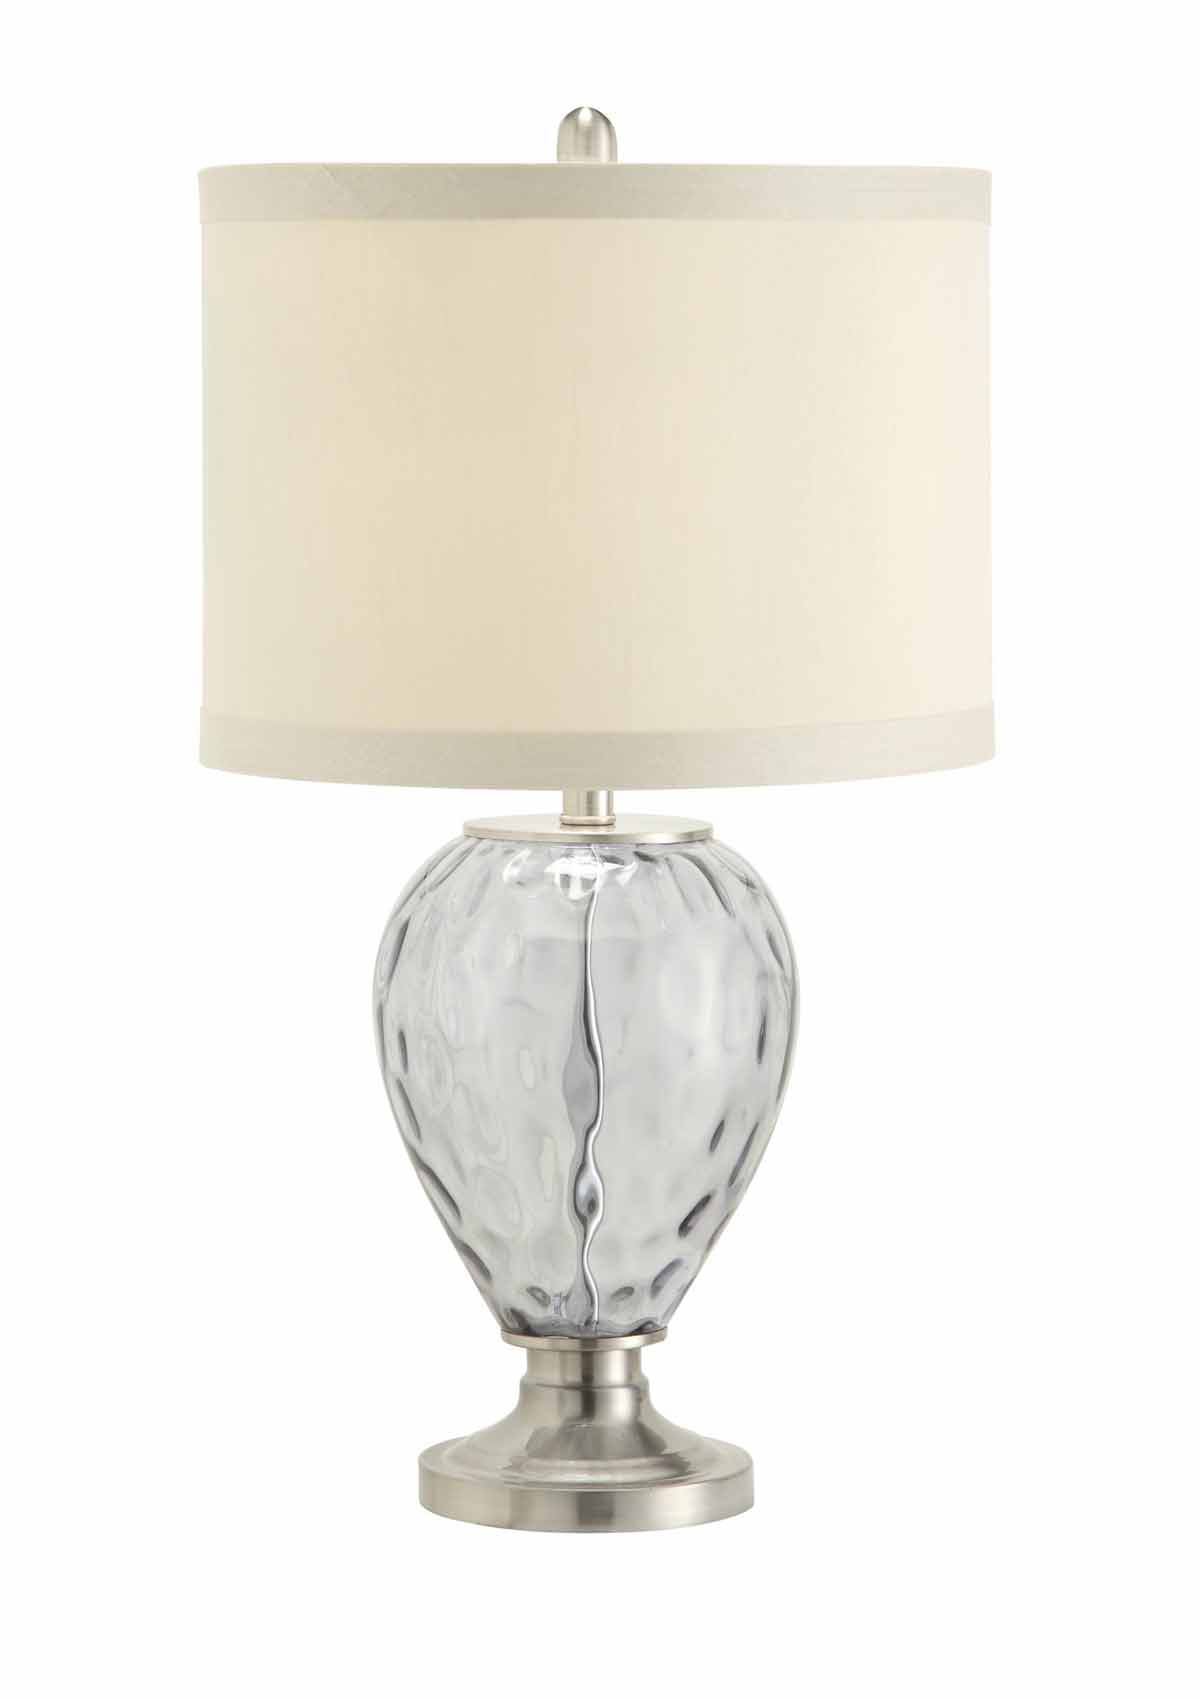 Coaster 901521 Table Lamp - Smoked Glass